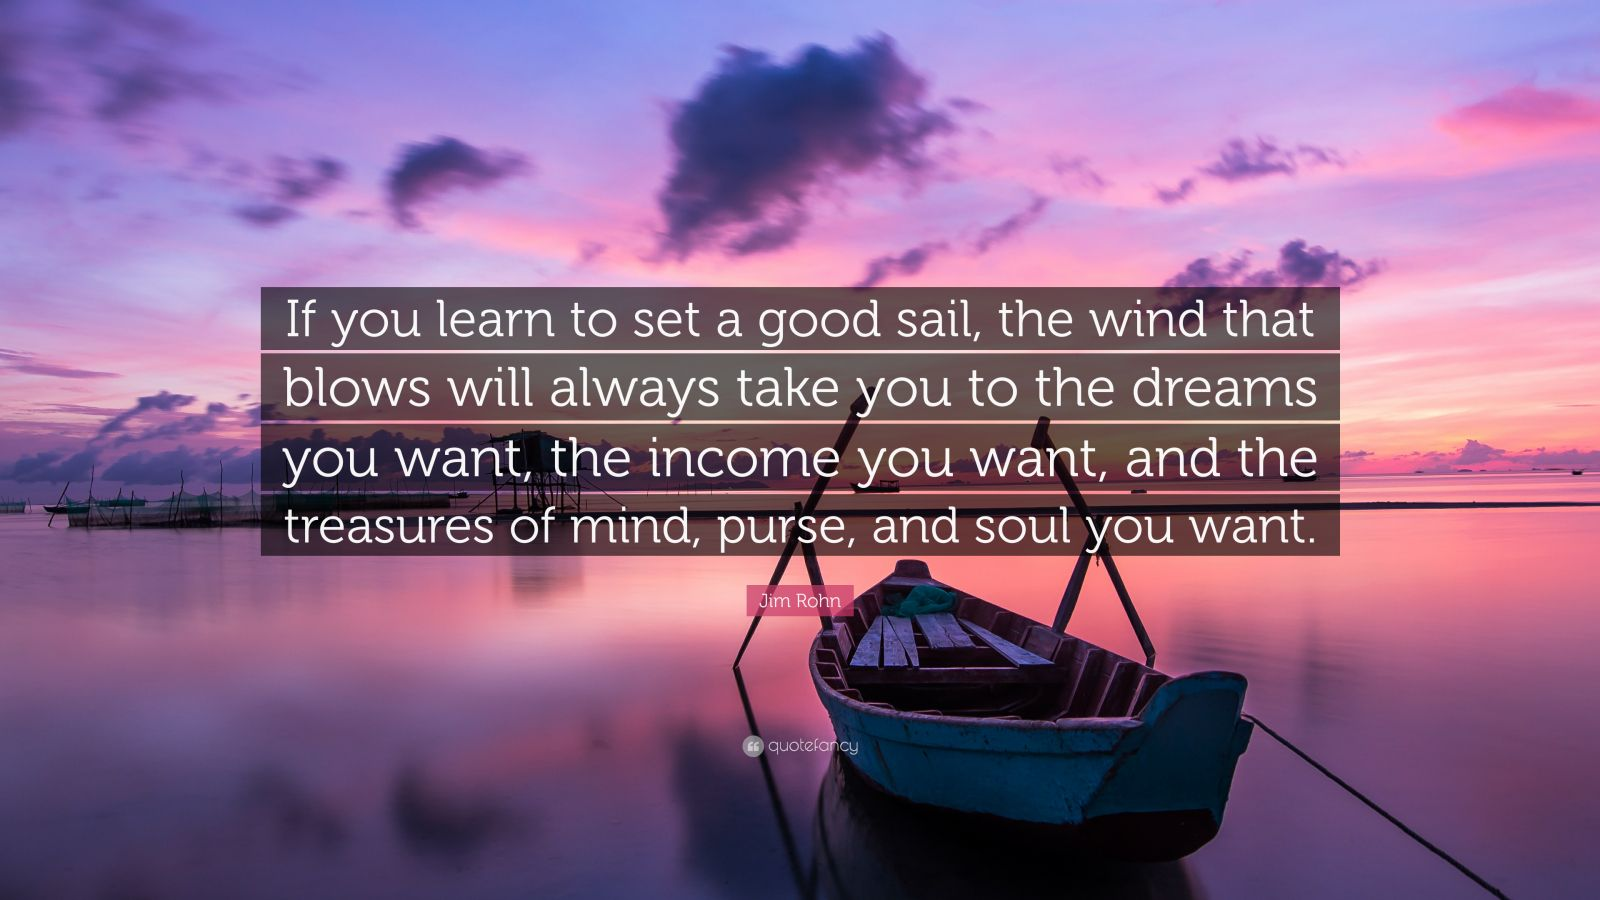 """Jim Rohn Quote: """"If you learn to set a good sail, the wind that blows will always take you to the dreams you want, the income you want, and the treasures of mind, purse, and soul you want."""""""